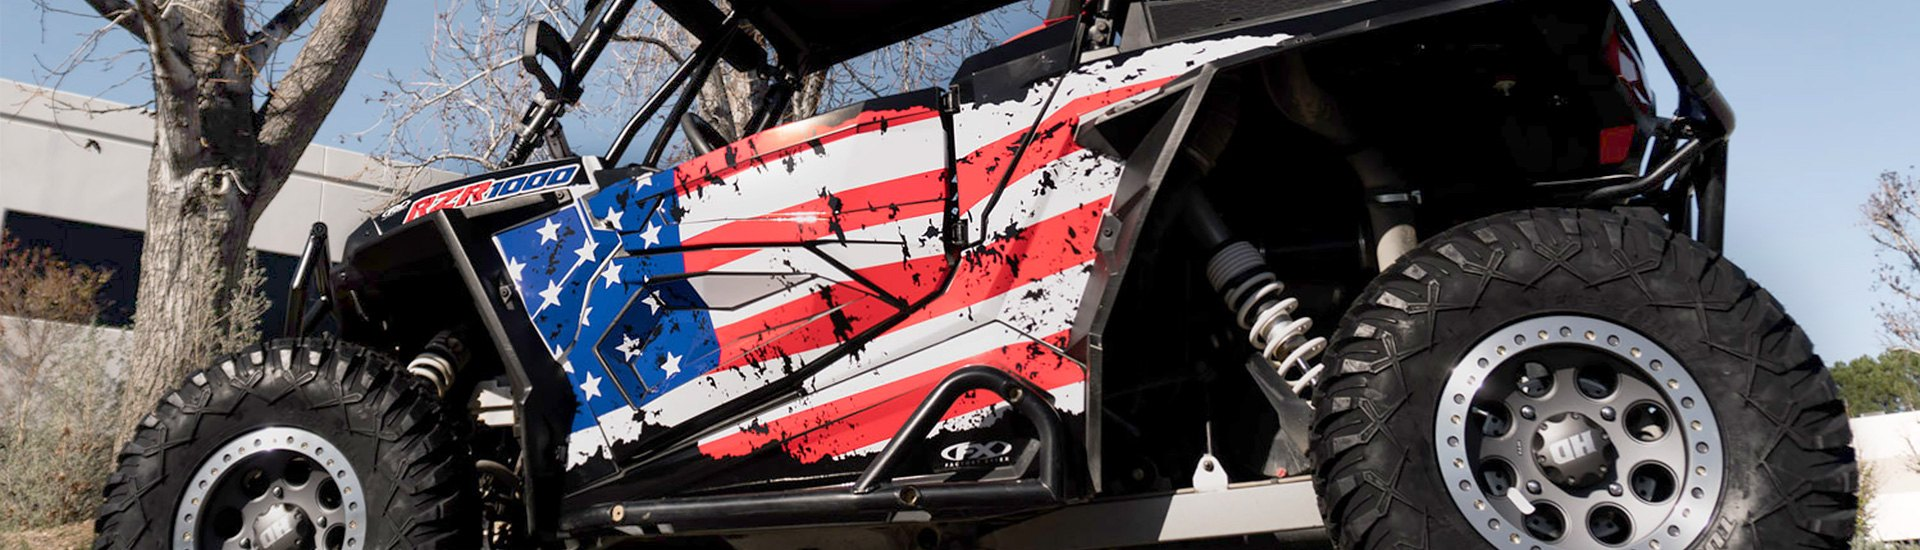 Powersports Graphics & Decals | ATV, Snowmobile, UTV, PWC